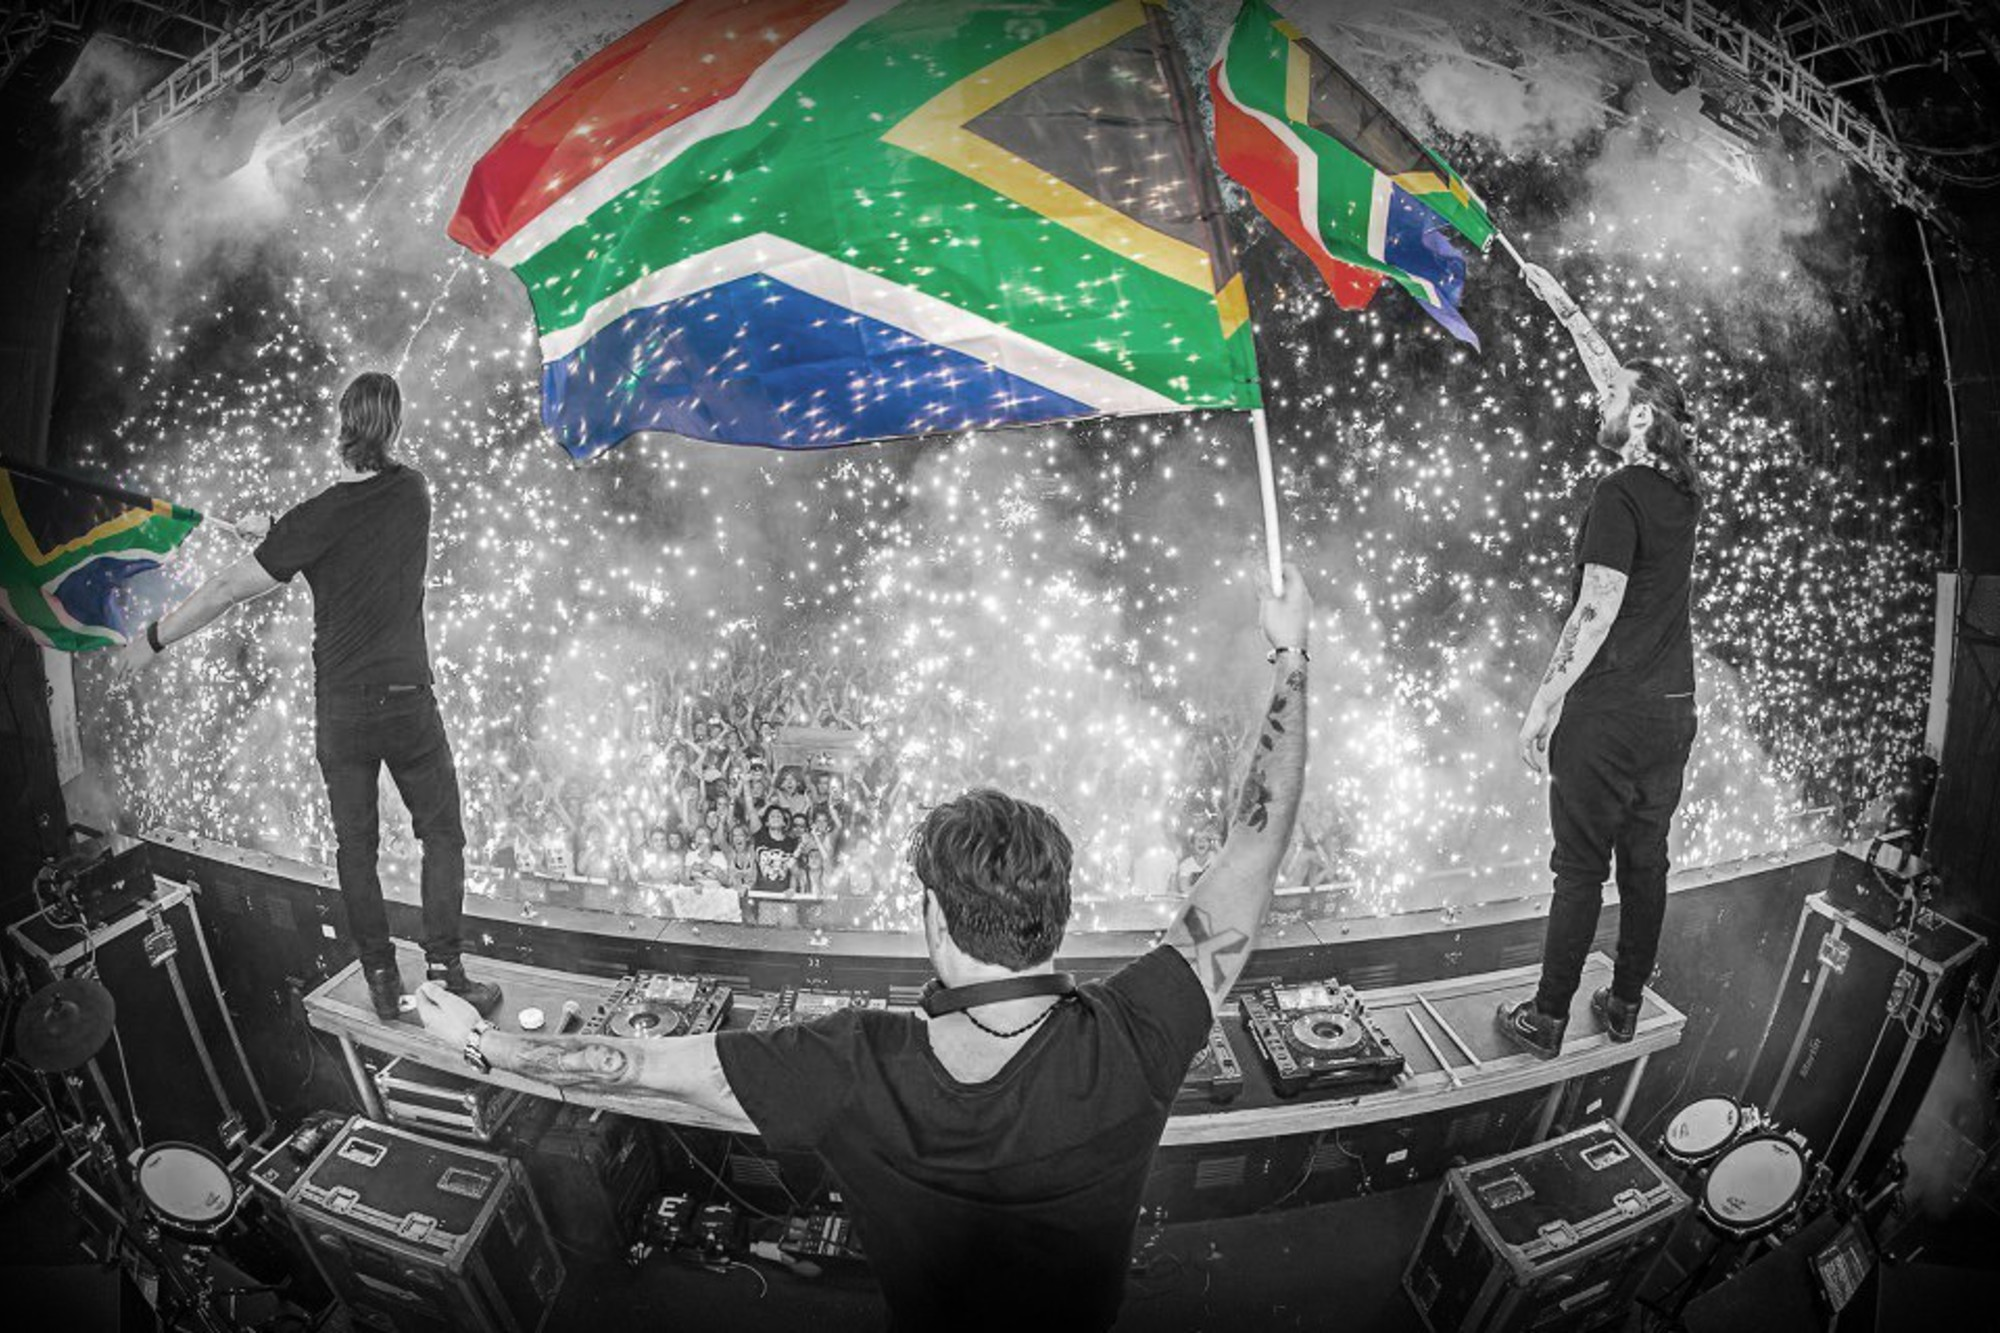 Most Inspiring Wallpaper Music Party - music-party-mafia-swedish-south-africa-concert-house-2000x1333-wallpaper  Graphic_579348.jpg